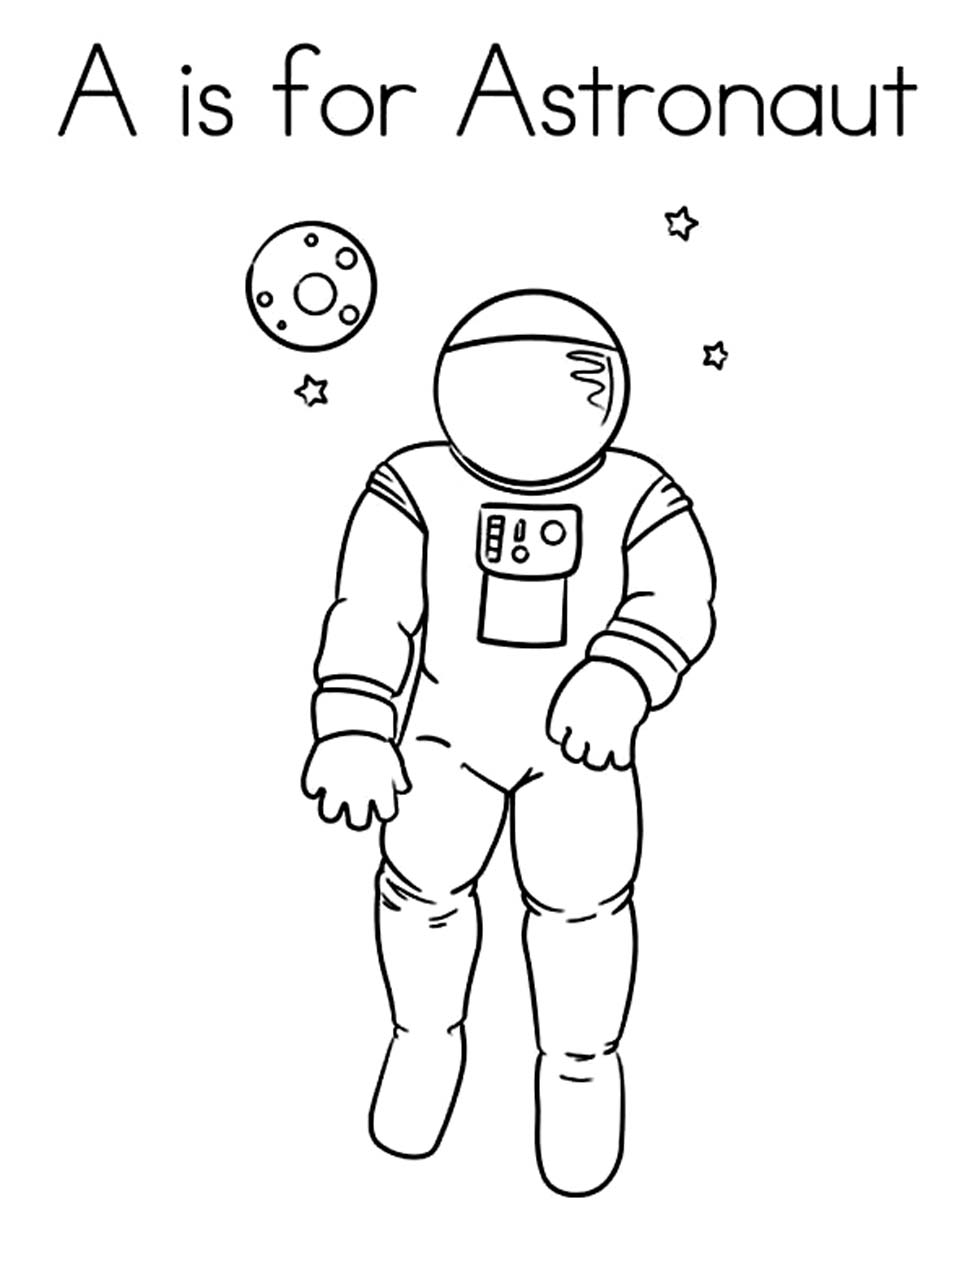 astronaut suit coloring sheet - photo #24